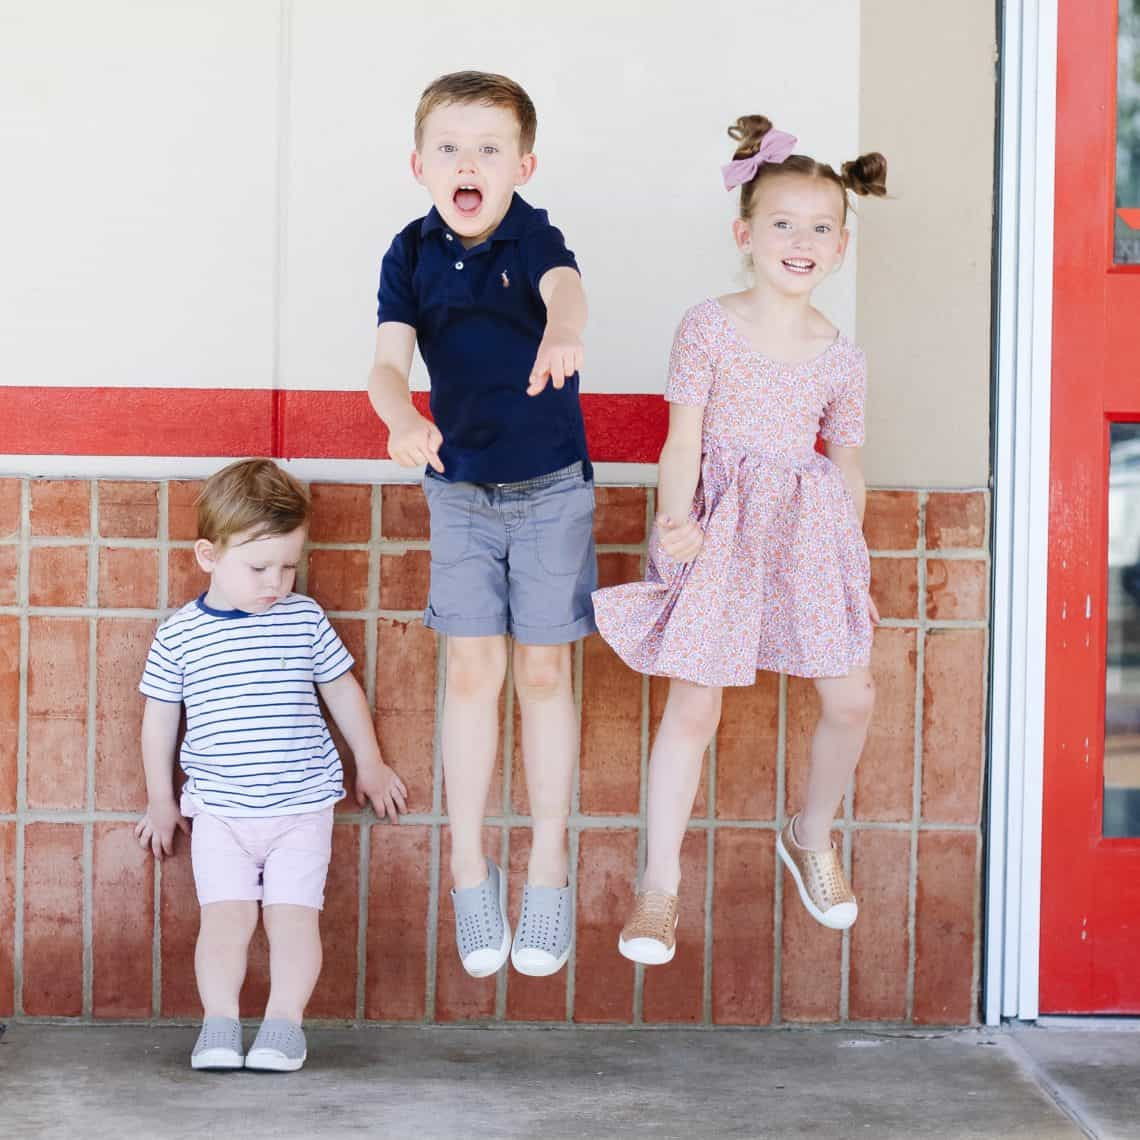 Kids jumping in front of Chuck E. Cheese